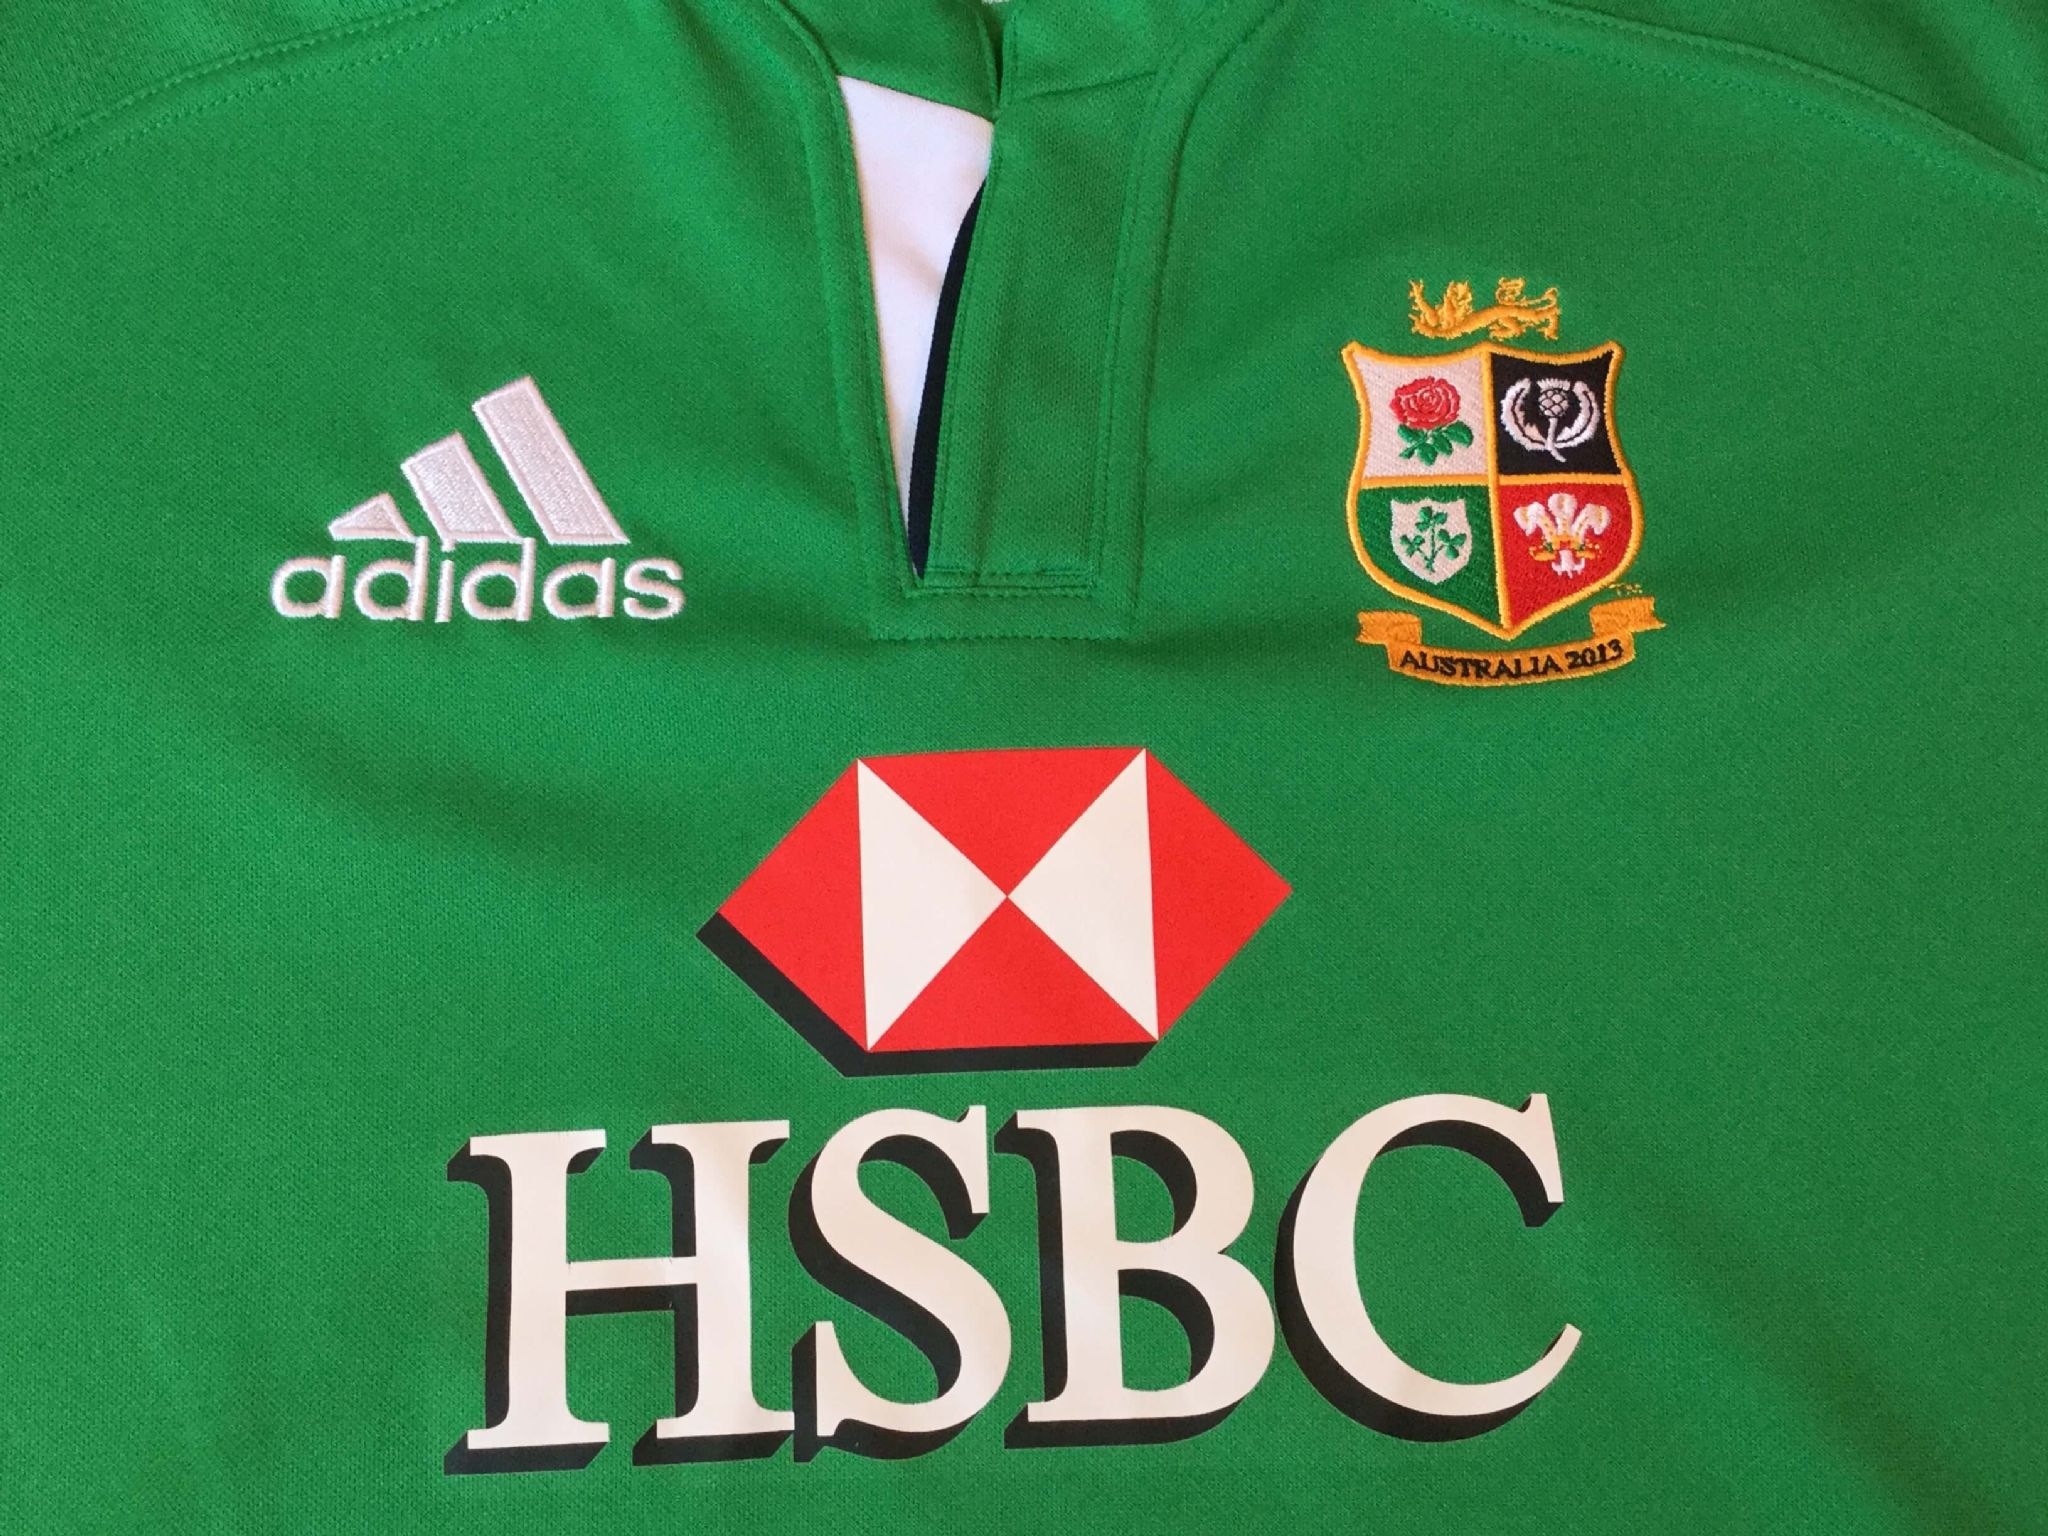 9eda56c2 Classic Rugby Shirts | 2013 British Lions Vintage Old Jerseys